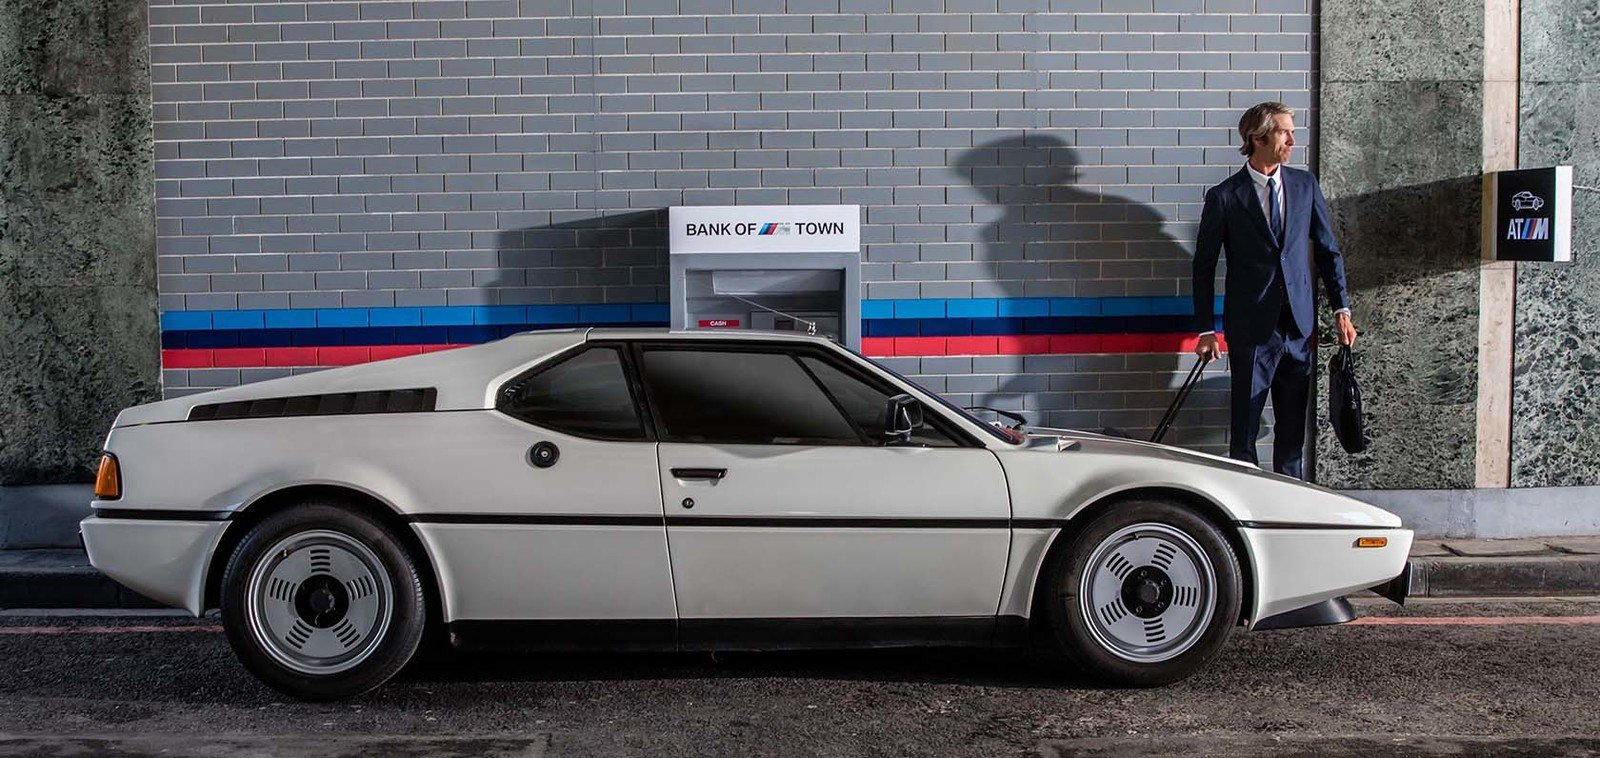 Bmw S New M Town Video Showcases The Legendary 1978 Bmw M1